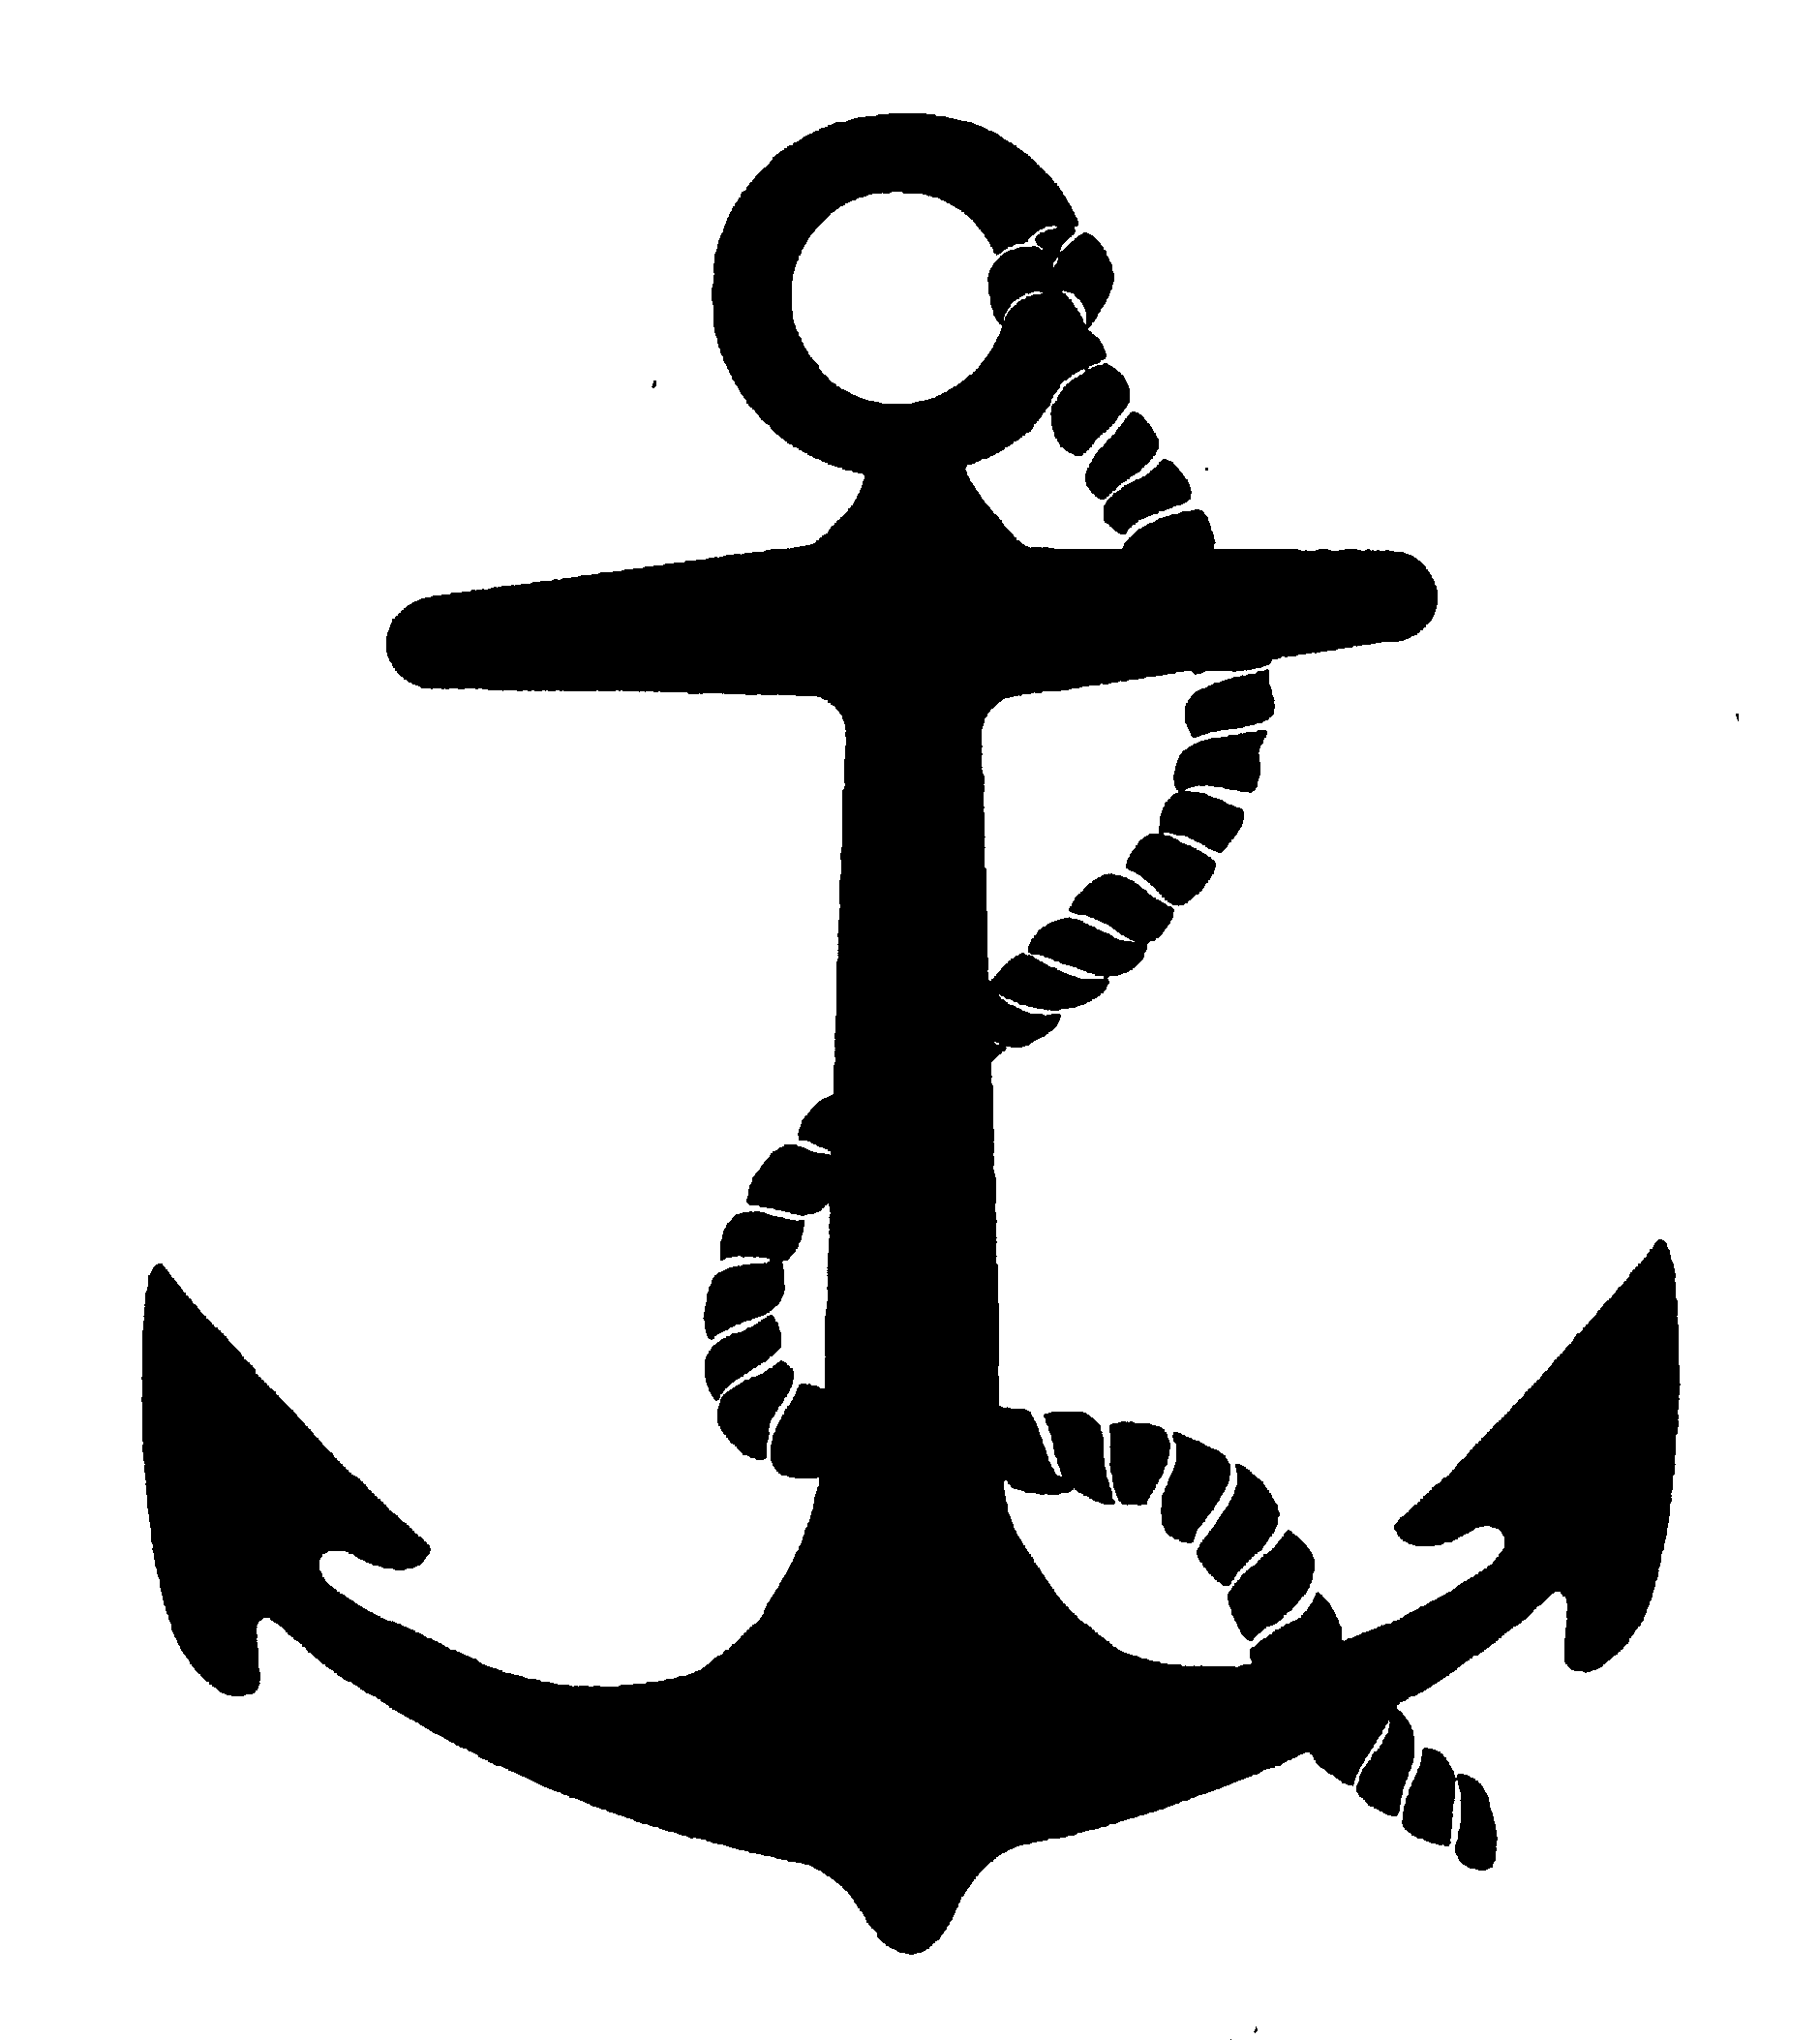 Clipart anchor logo clipart black and white stock Clipart anchor logo - ClipartFest clipart black and white stock